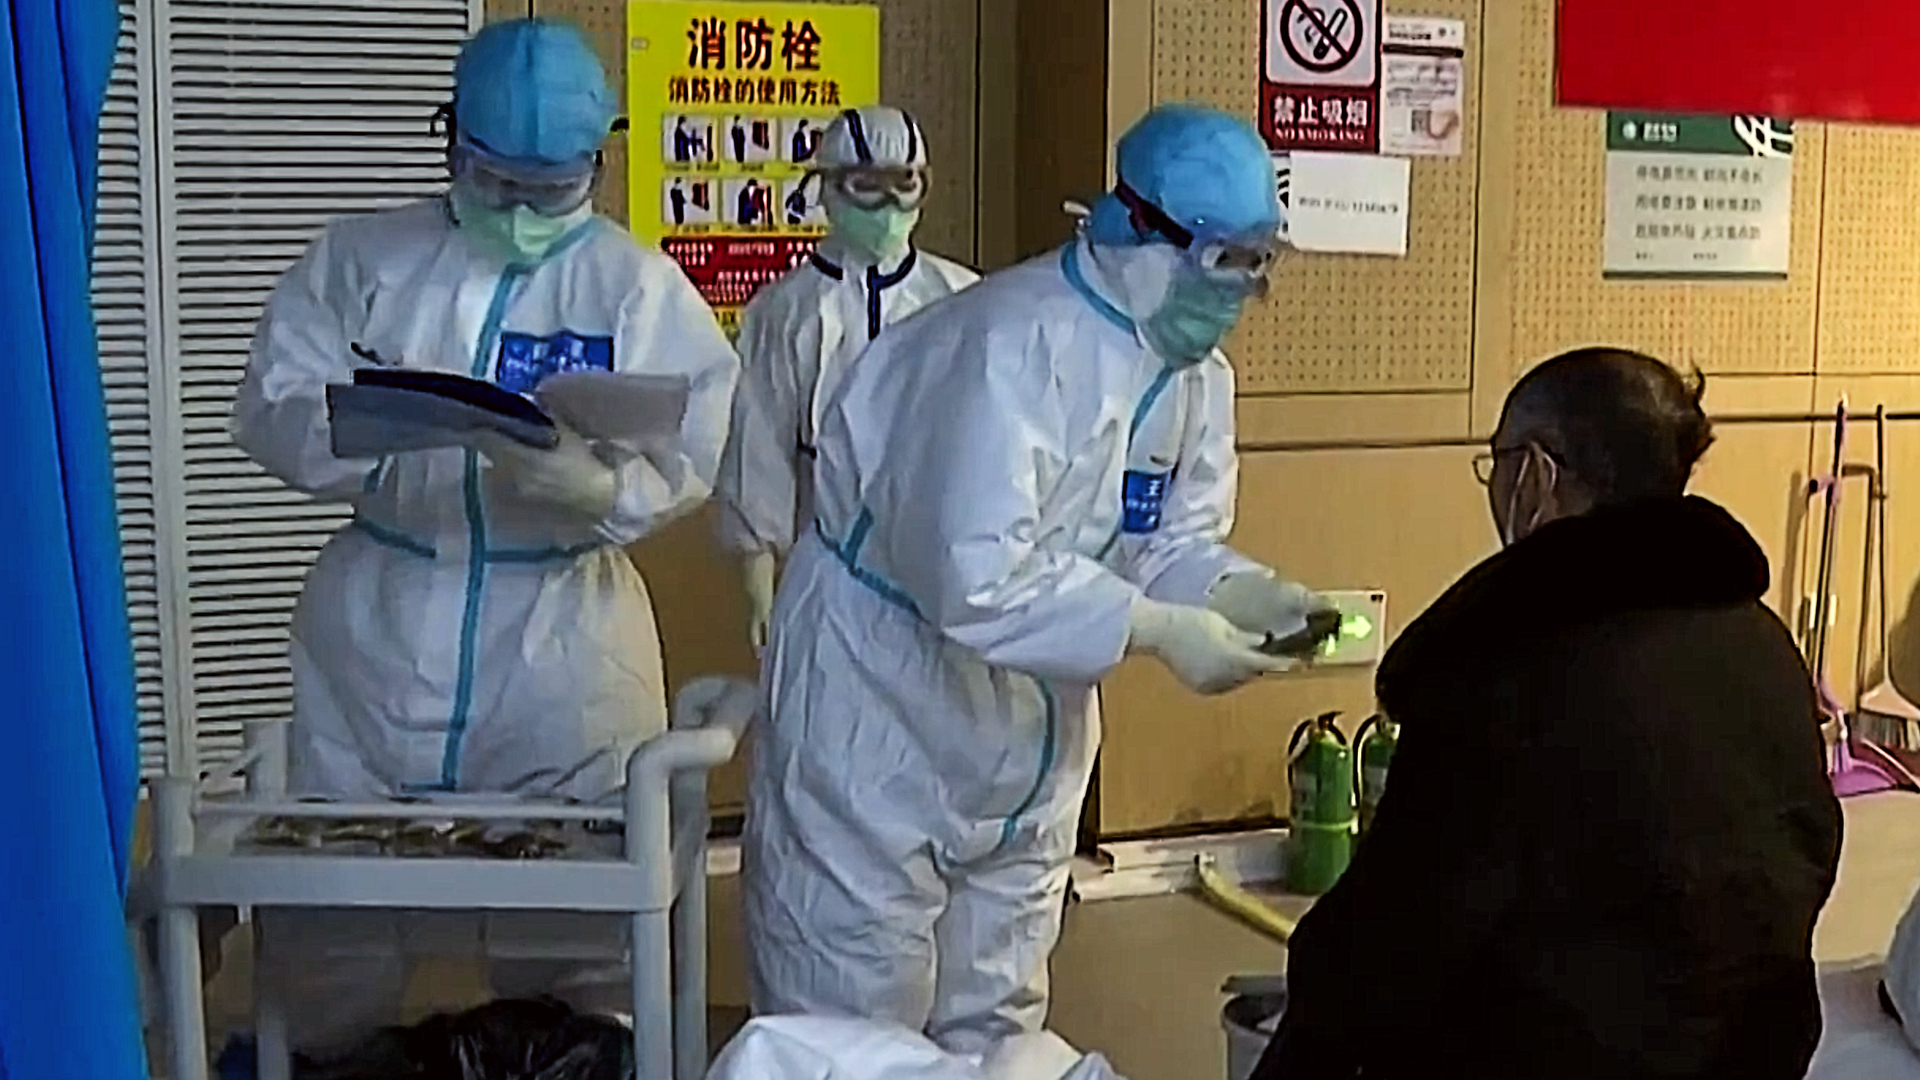 China's Wuhan has tested third of residents for coronavirus